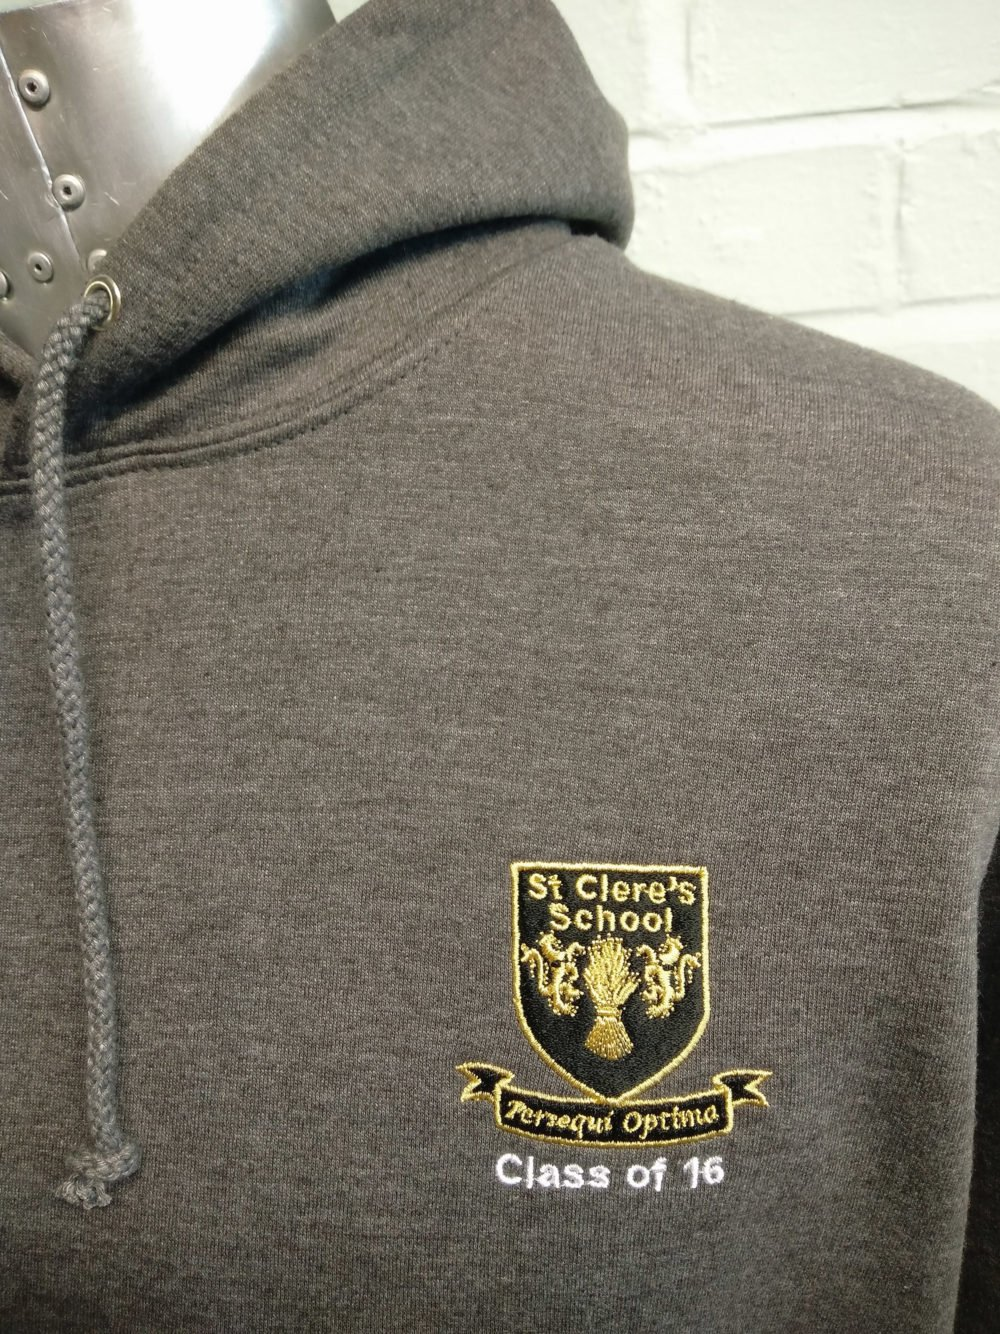 St Claires 16 Leavers Hoodies